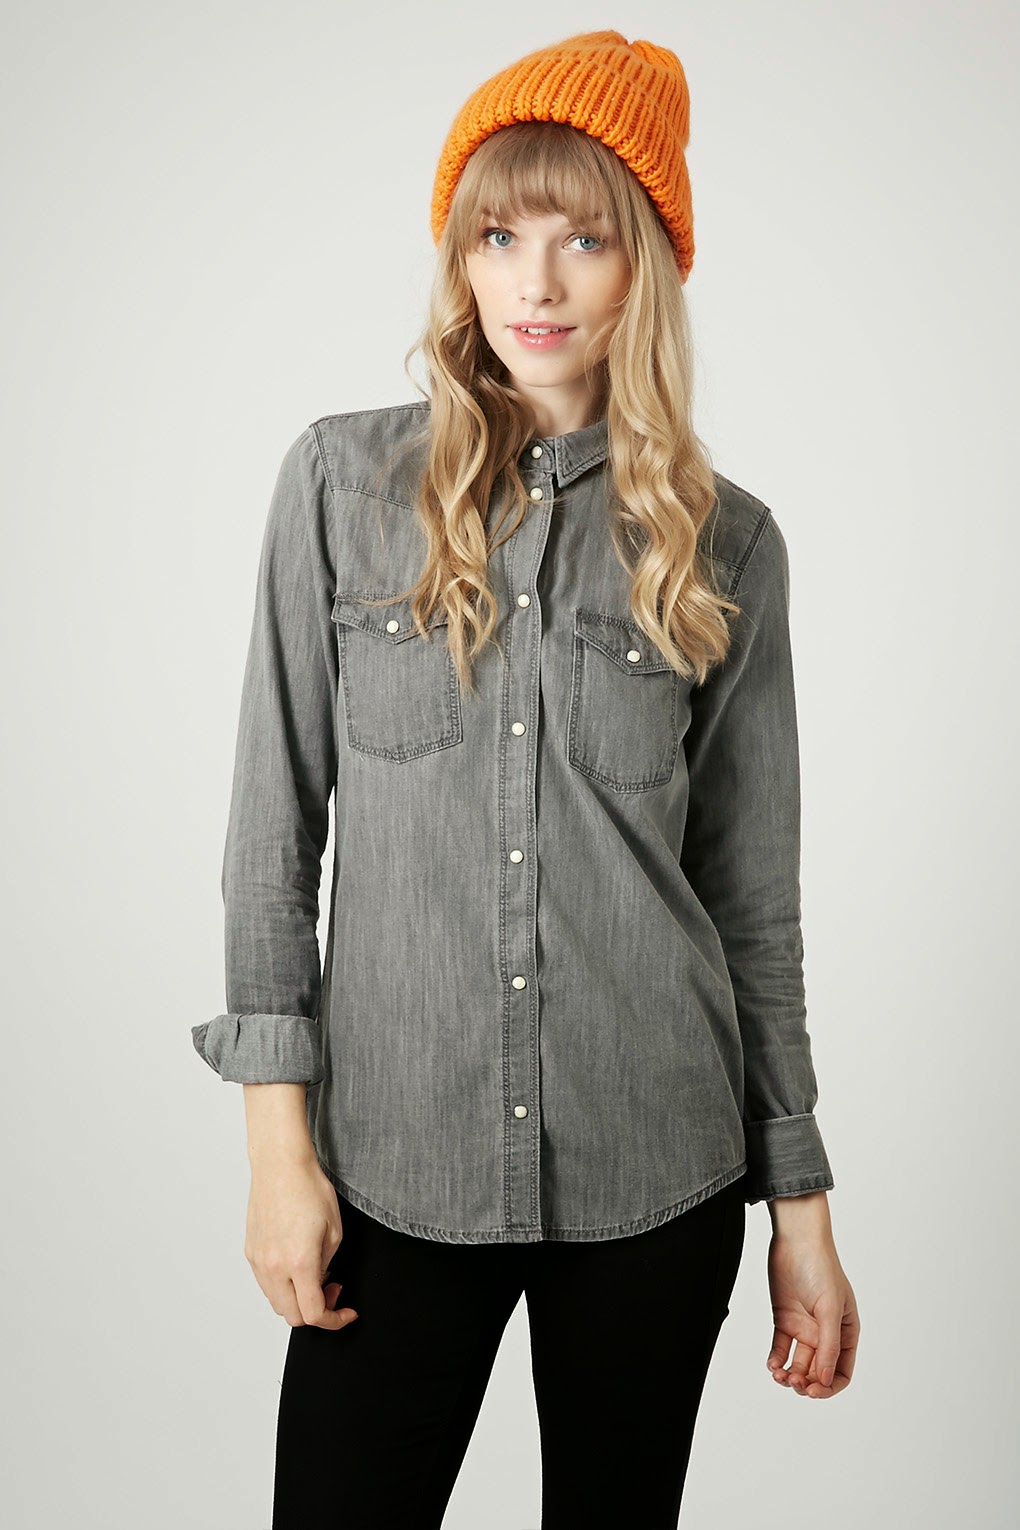 topshop grey denim shirt, grey denim shirt,